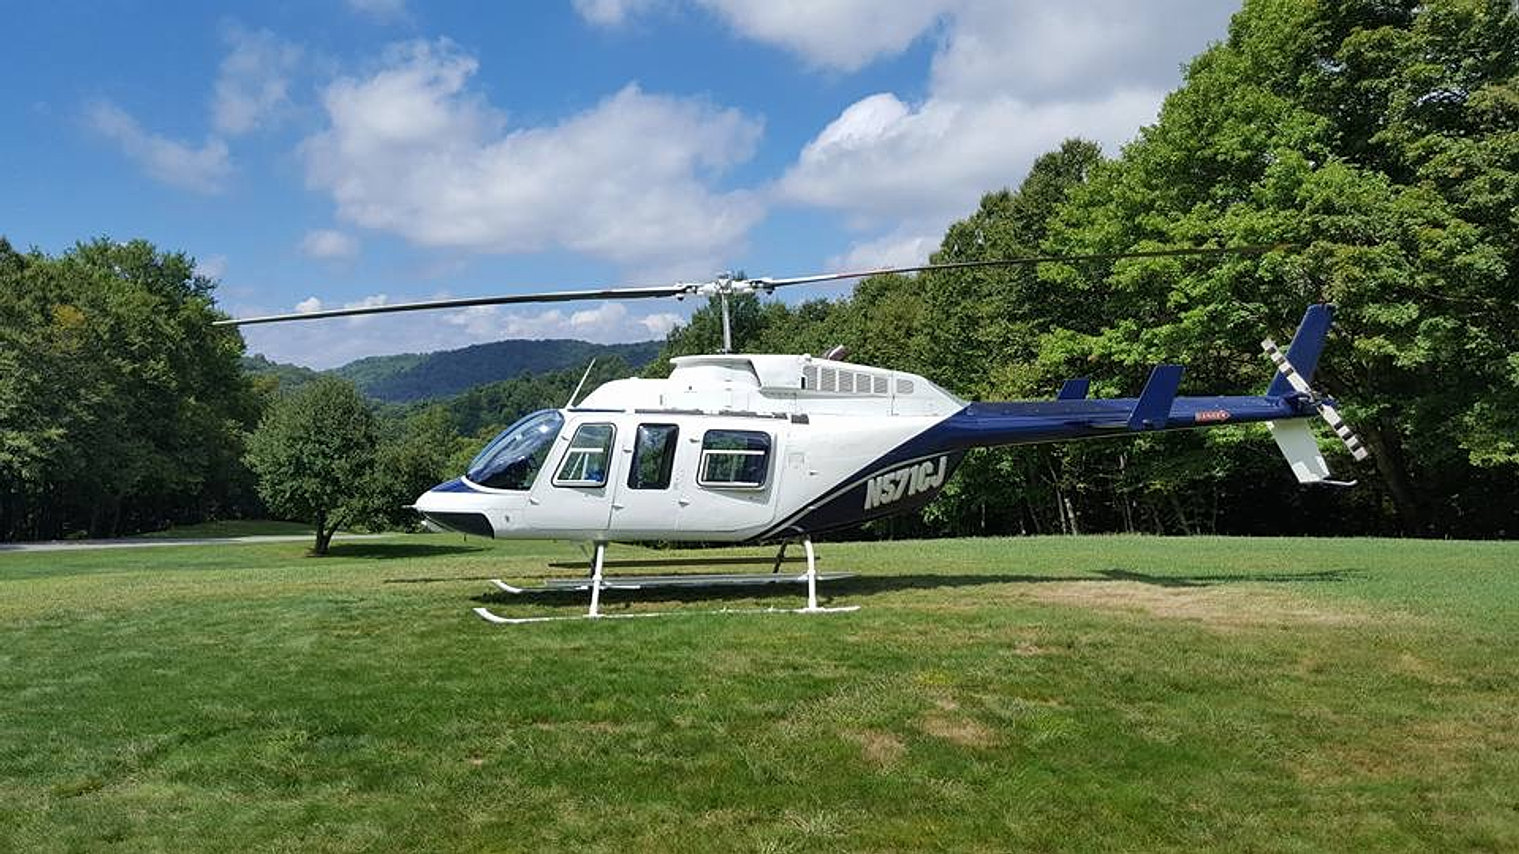 scenic helicopter tours sevierville tn with Charter on LocationPhotoDirectLink G55328 D535249 I145685193 Scenic Helicopter Tours Sevierville Tennessee likewise LocationPhotoDirectLink G55328 D535249 I85317874 Scenic Helicopter Tours Sevierville Tennessee also LocationPhotoDirectLink G55328 D535249 I128933510 Scenic Helicopter Tours Sevierville Tennessee furthermore Scenic Helicopter Tours Pigeon Forge also Outdoor act.